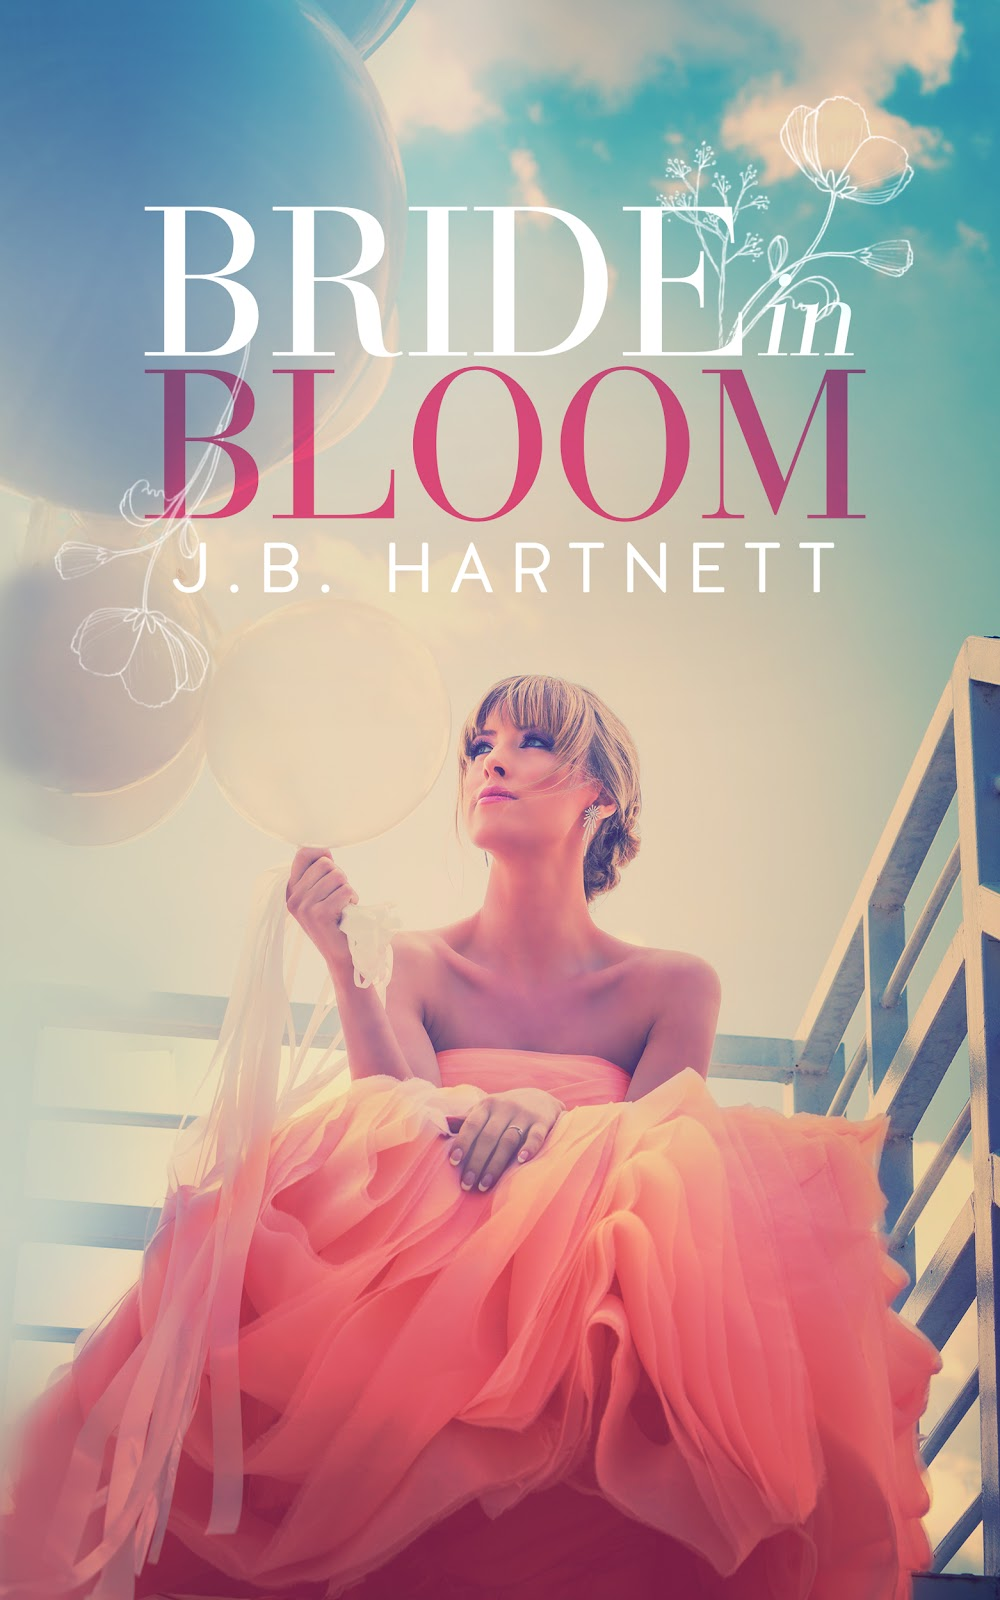 BRIDE IN BLOOM JB HARTNETT AMAZON KINDLE EBOOK COVER.jpg